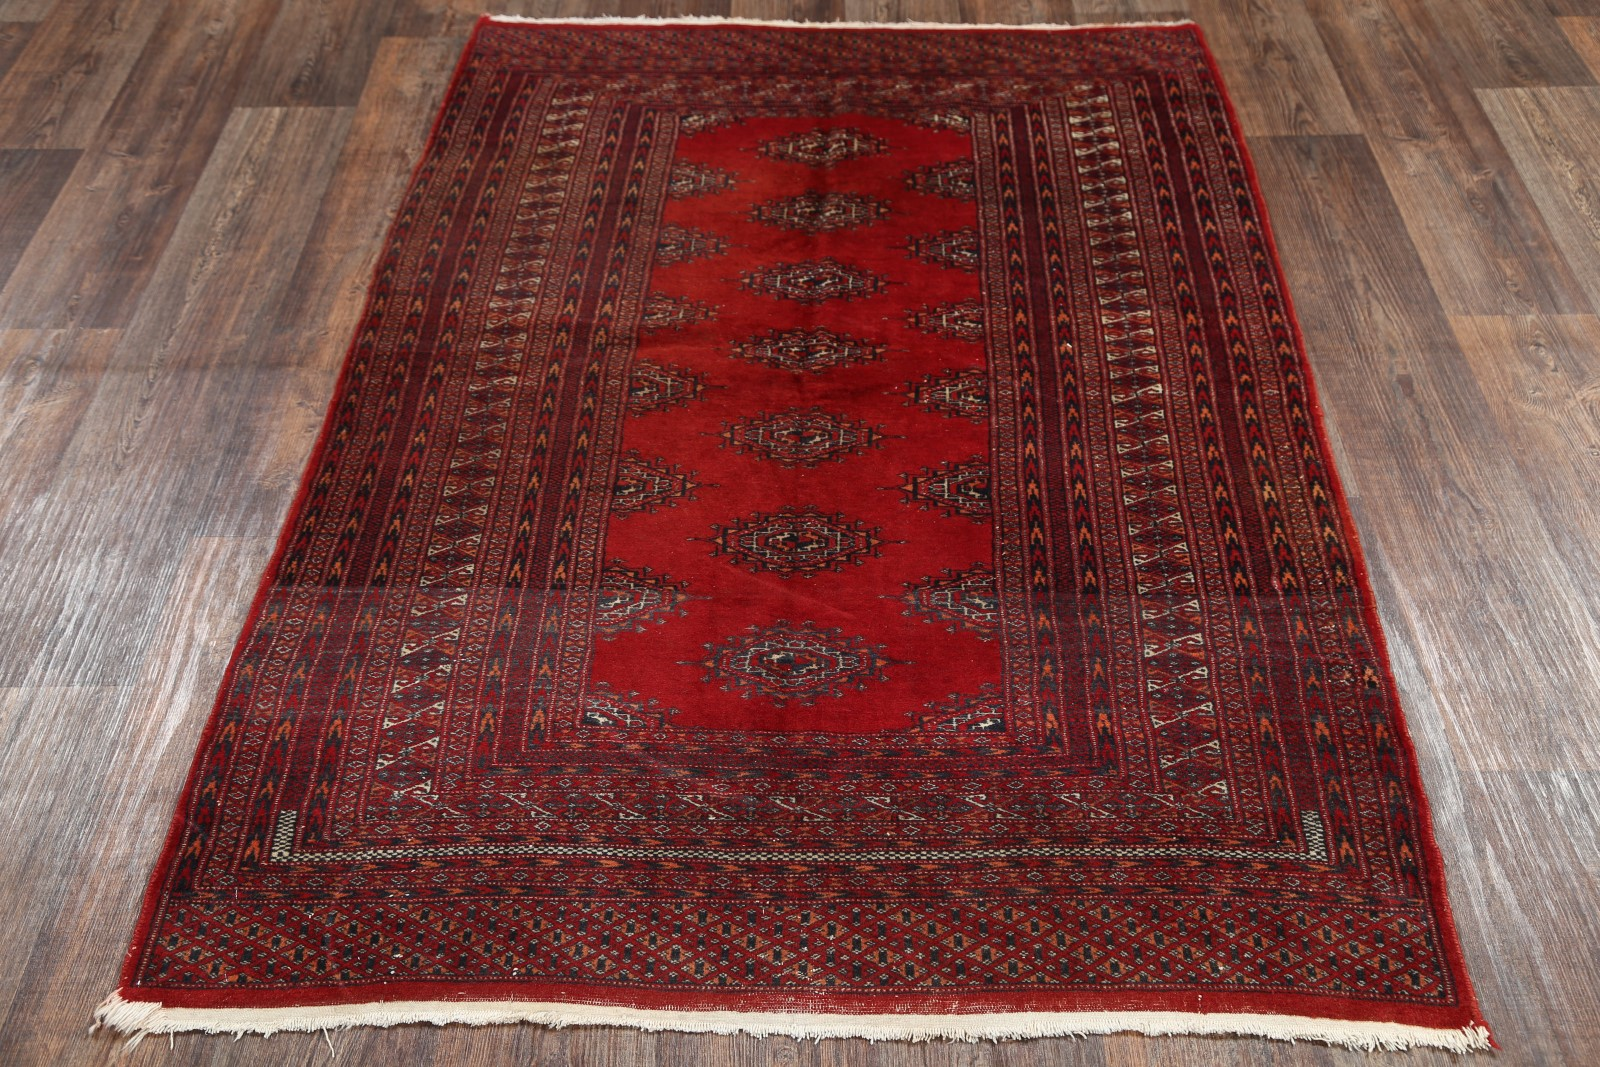 Foyer Rugs What Size : Knots vintage geometric foyer size bokhara